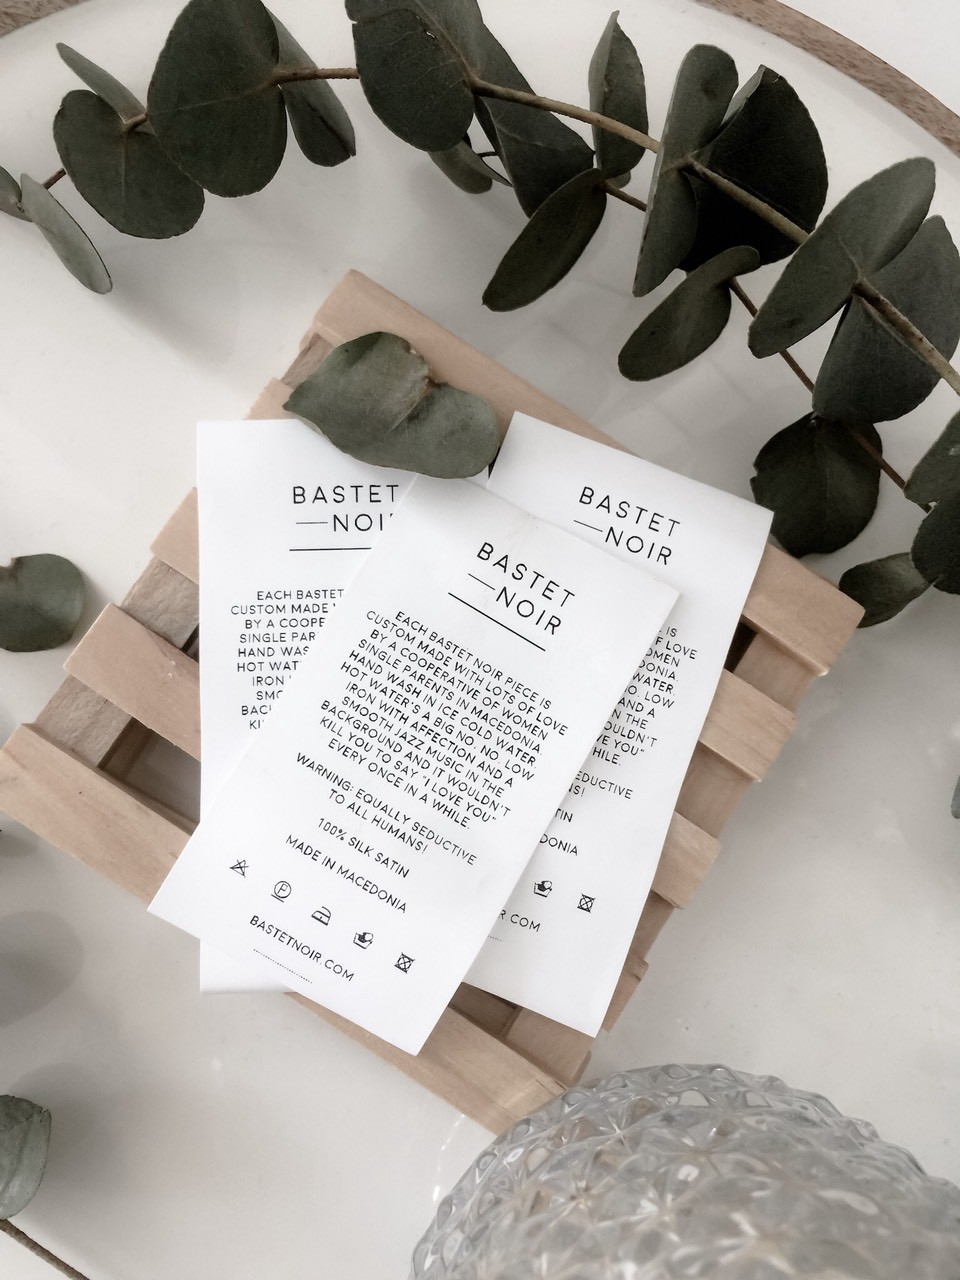 Care labels by Bastet Noir